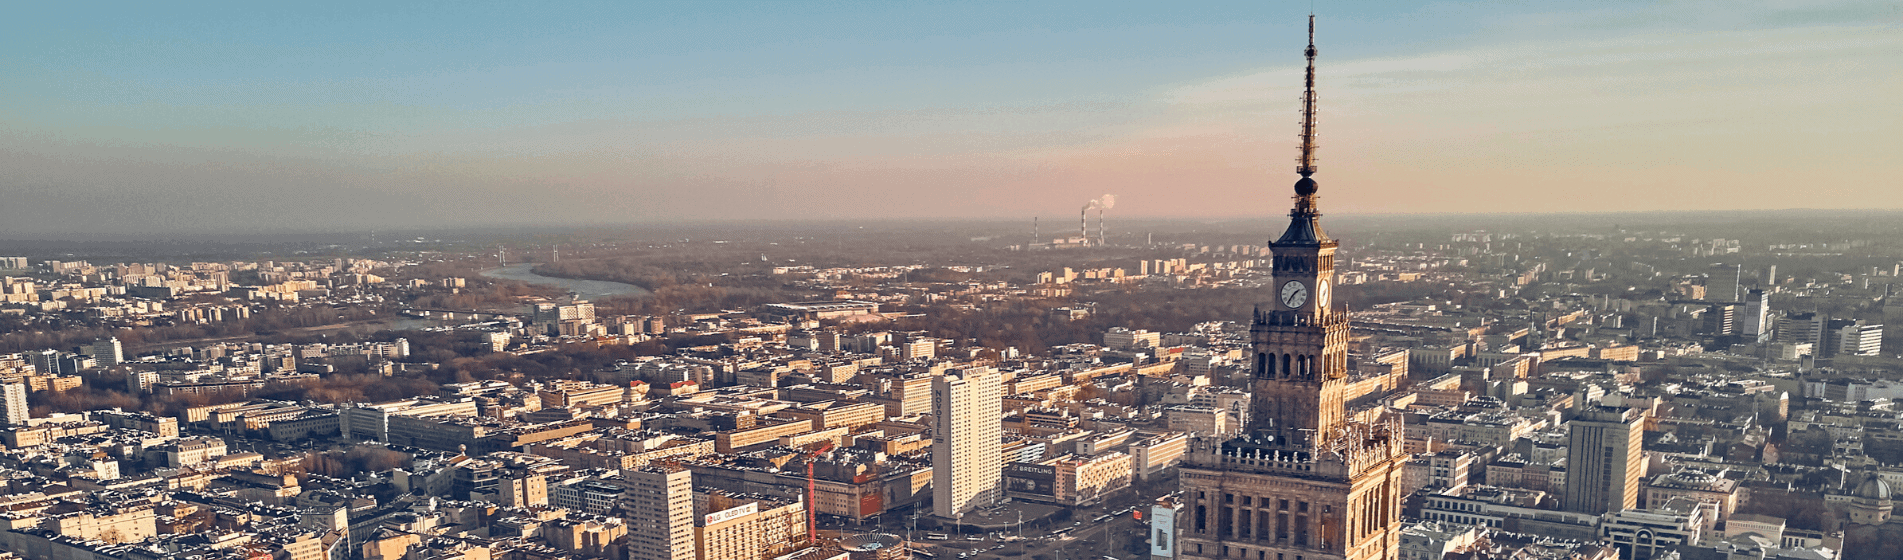 Observations on living and doing business in Poland